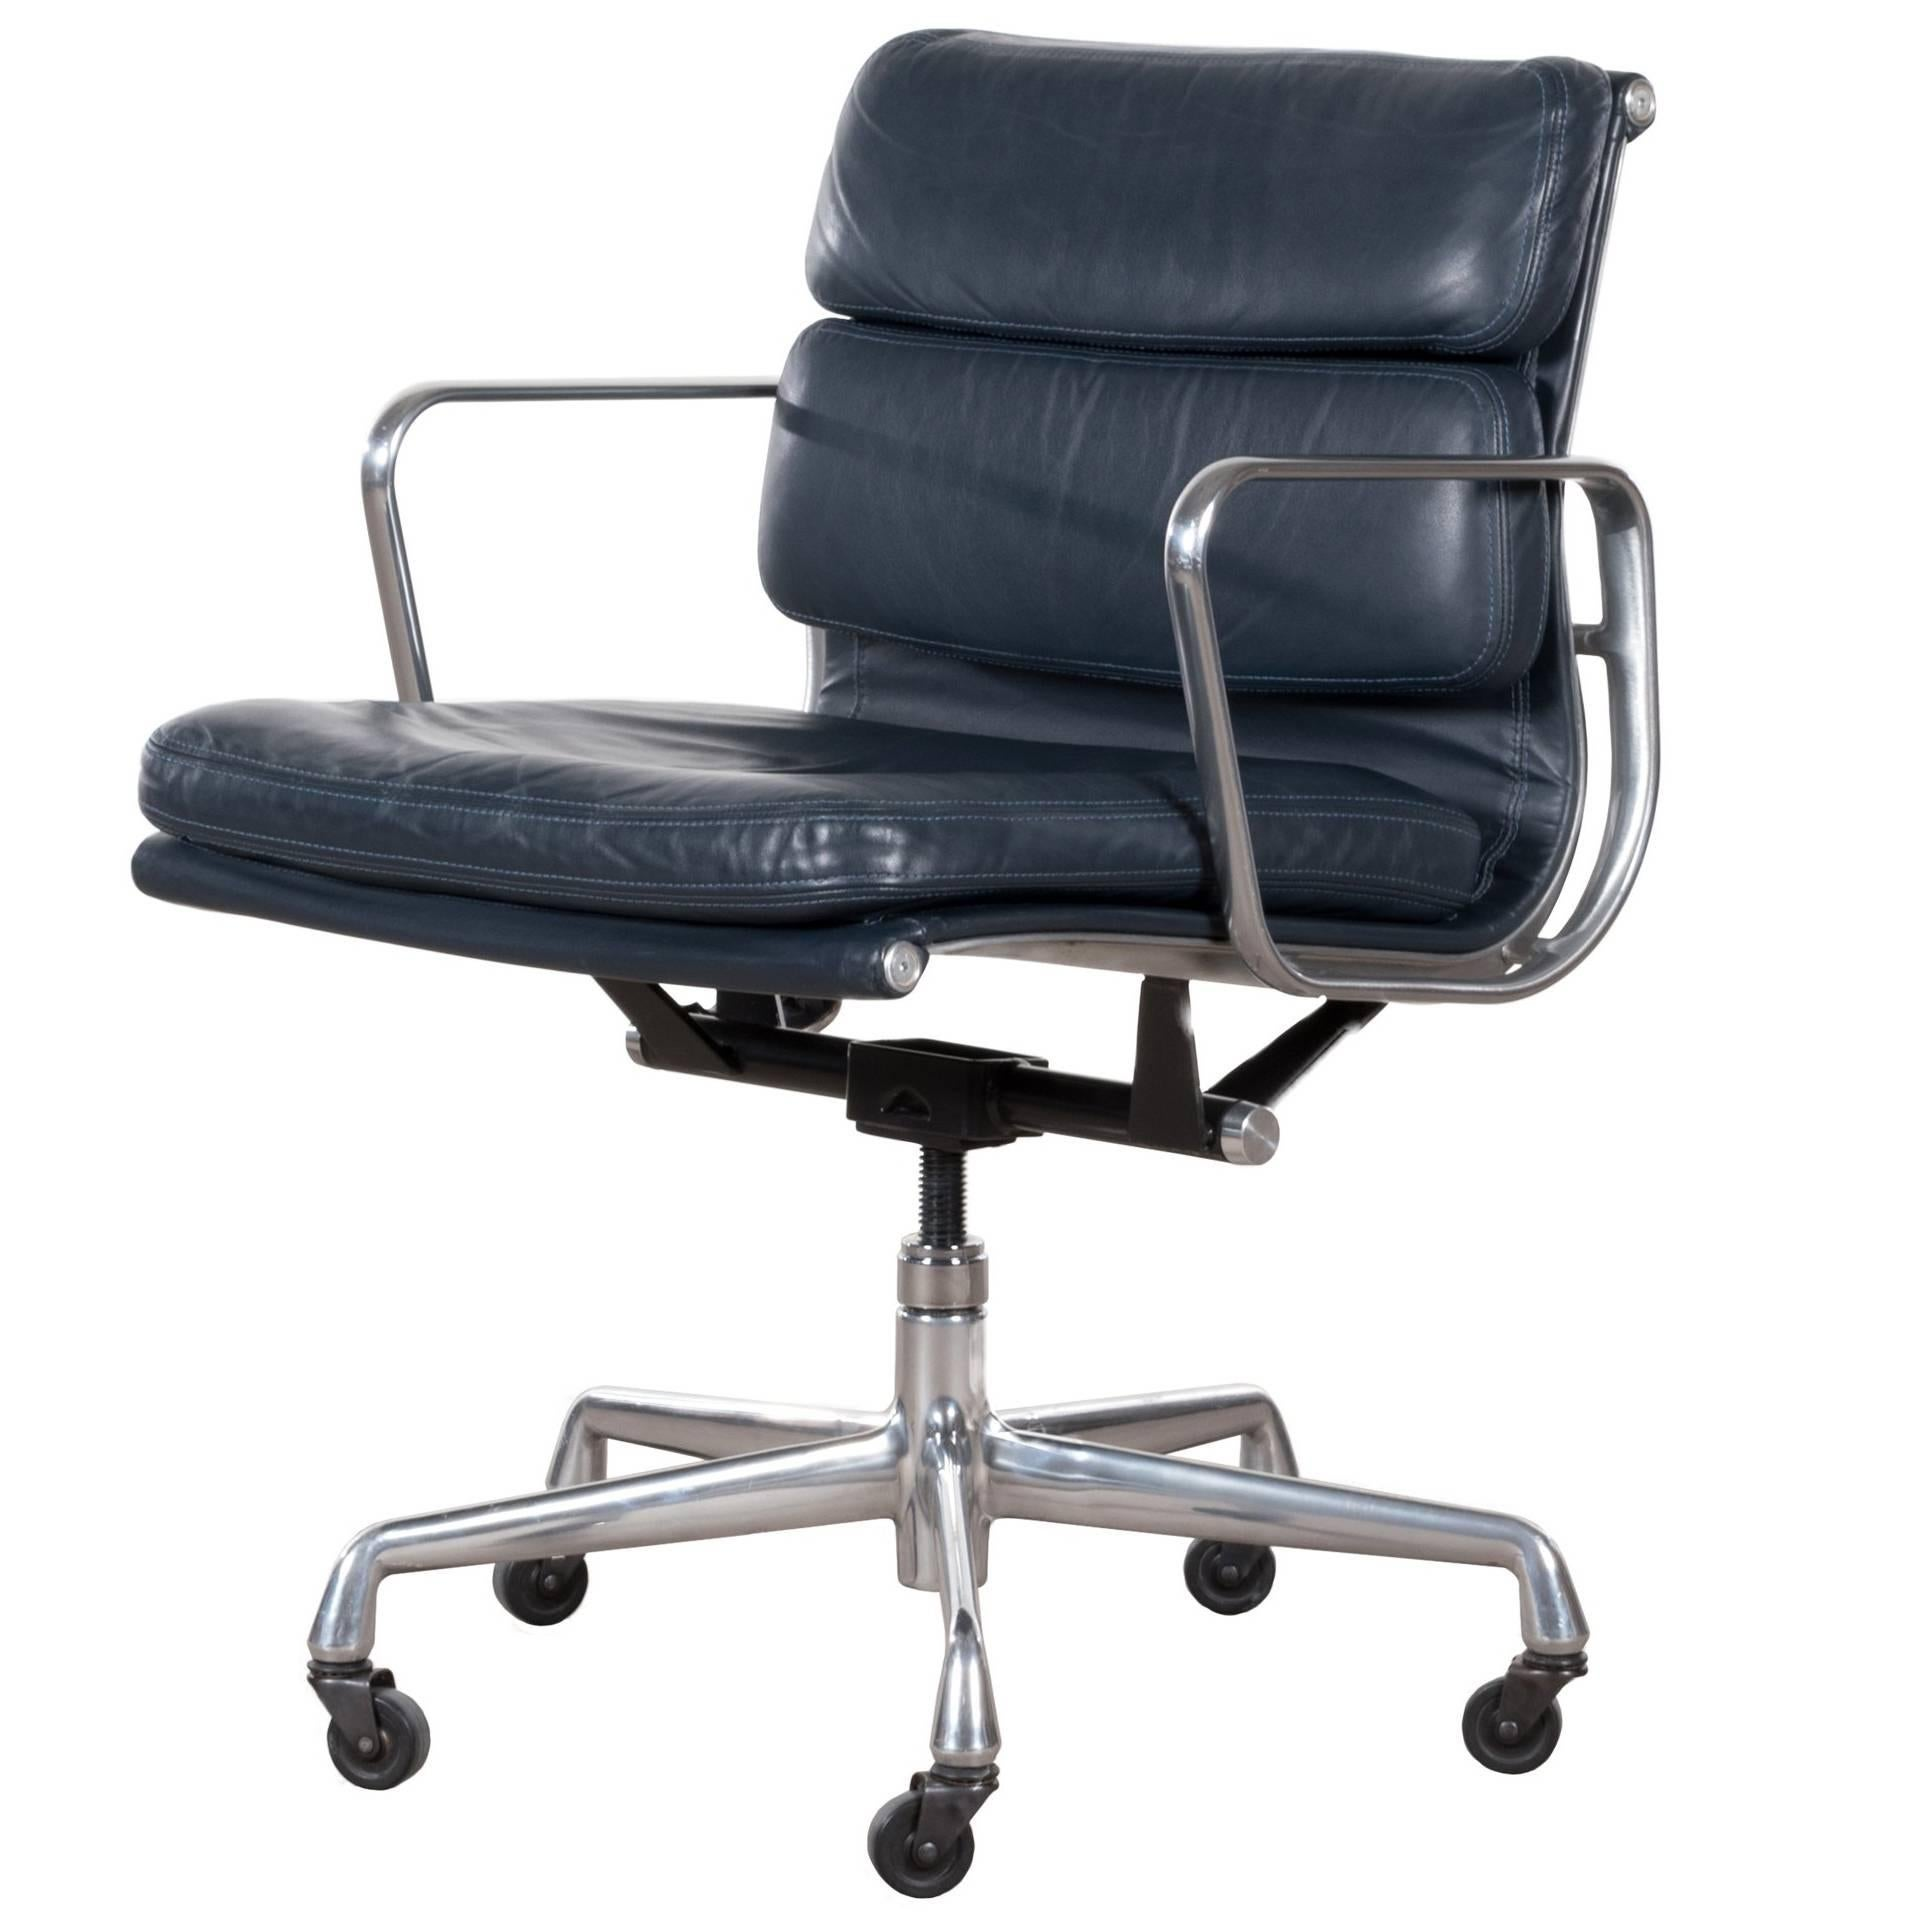 blue leather office chair 2 seater eames ea435 dark management soft pad by herman miller at 1stdibs